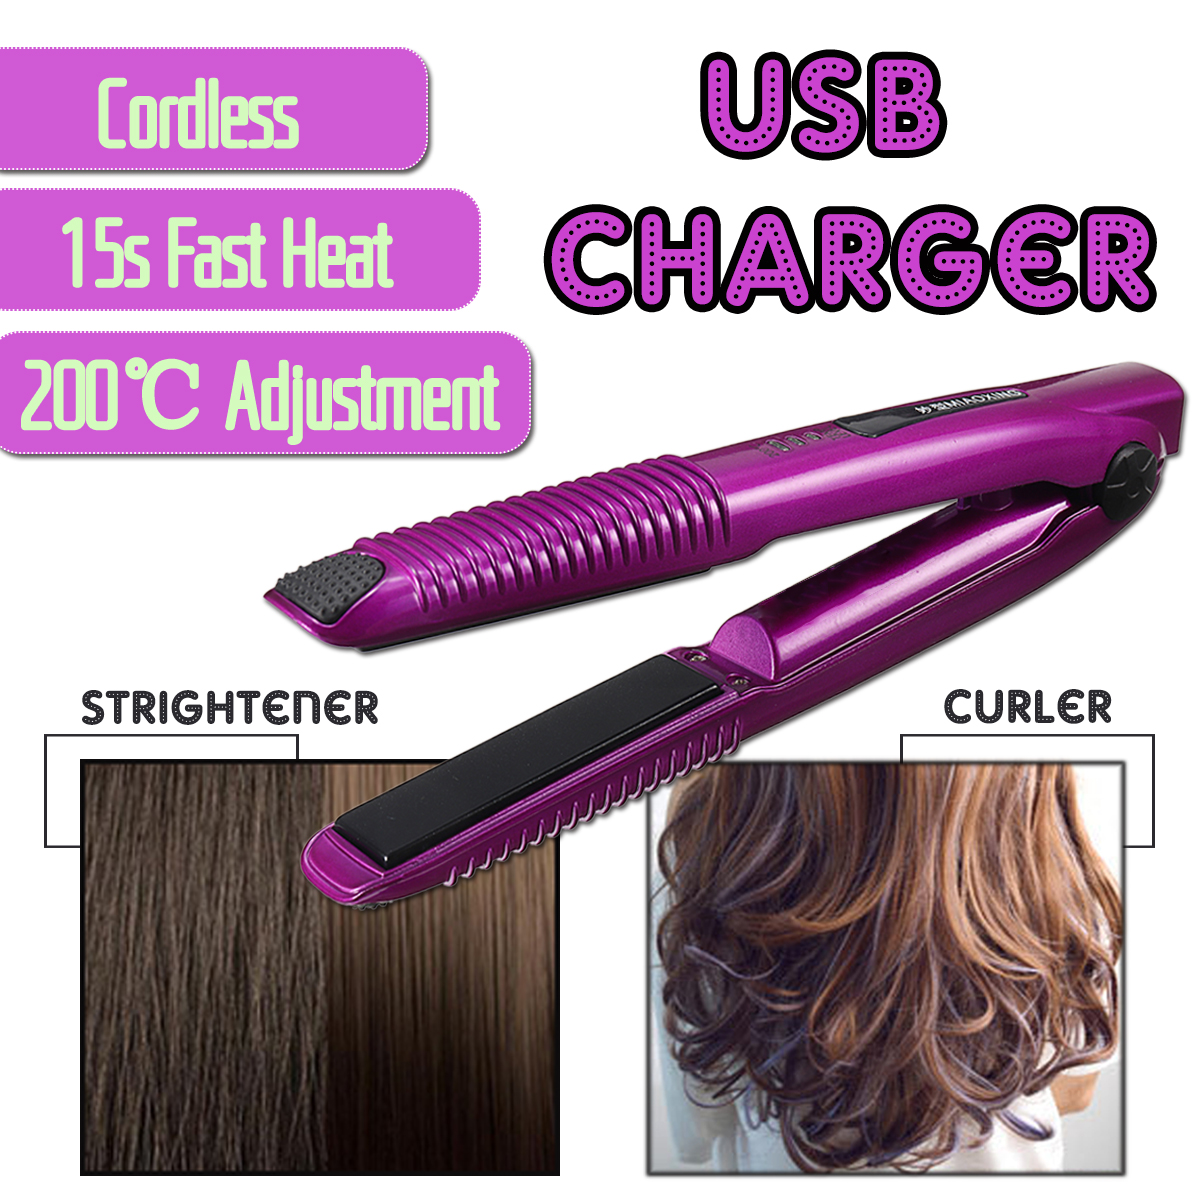 2-in-1 Hair Curling & Straightening Iron USB Rechargeable Curling Irons Professional Hair Curler Quality Hair Styling Tools EU 3 in 1 straightening corrugated iron ceramic hair straightener and hair curler professional curling wand iron hair styling tools